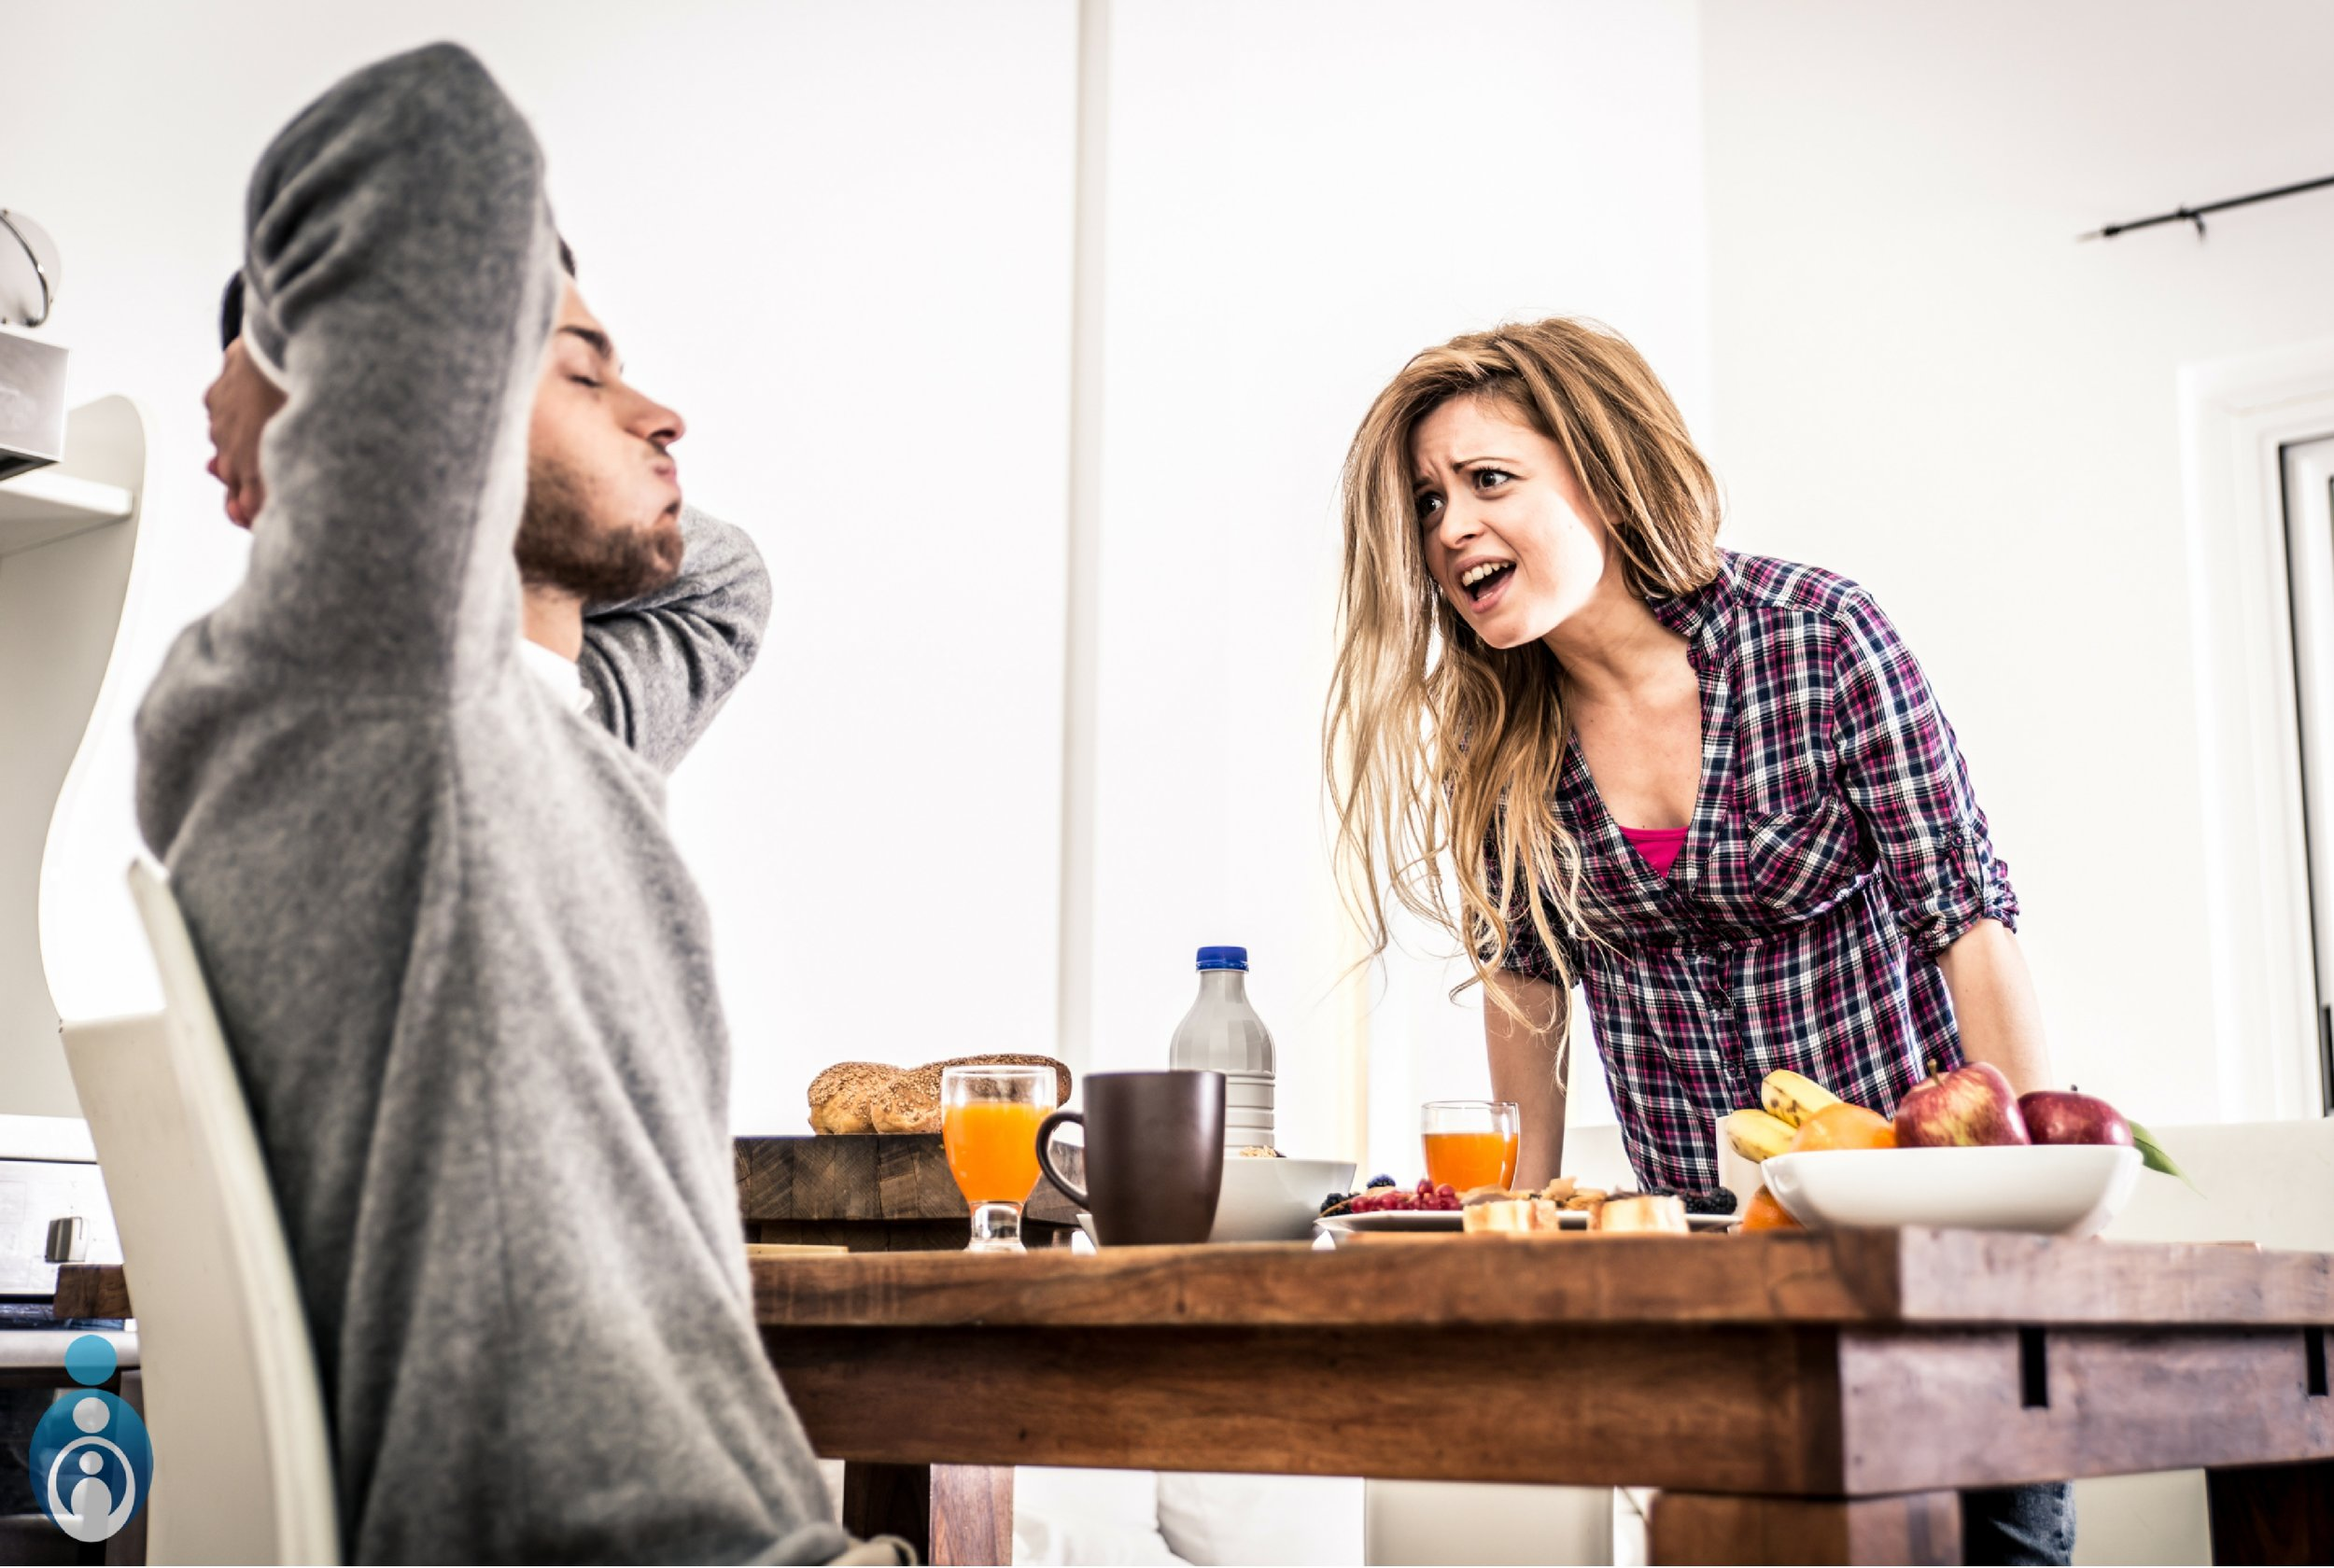 fighting-fair-in-marriage-Americas-family-coaches-blog-strengthen-your-marriage